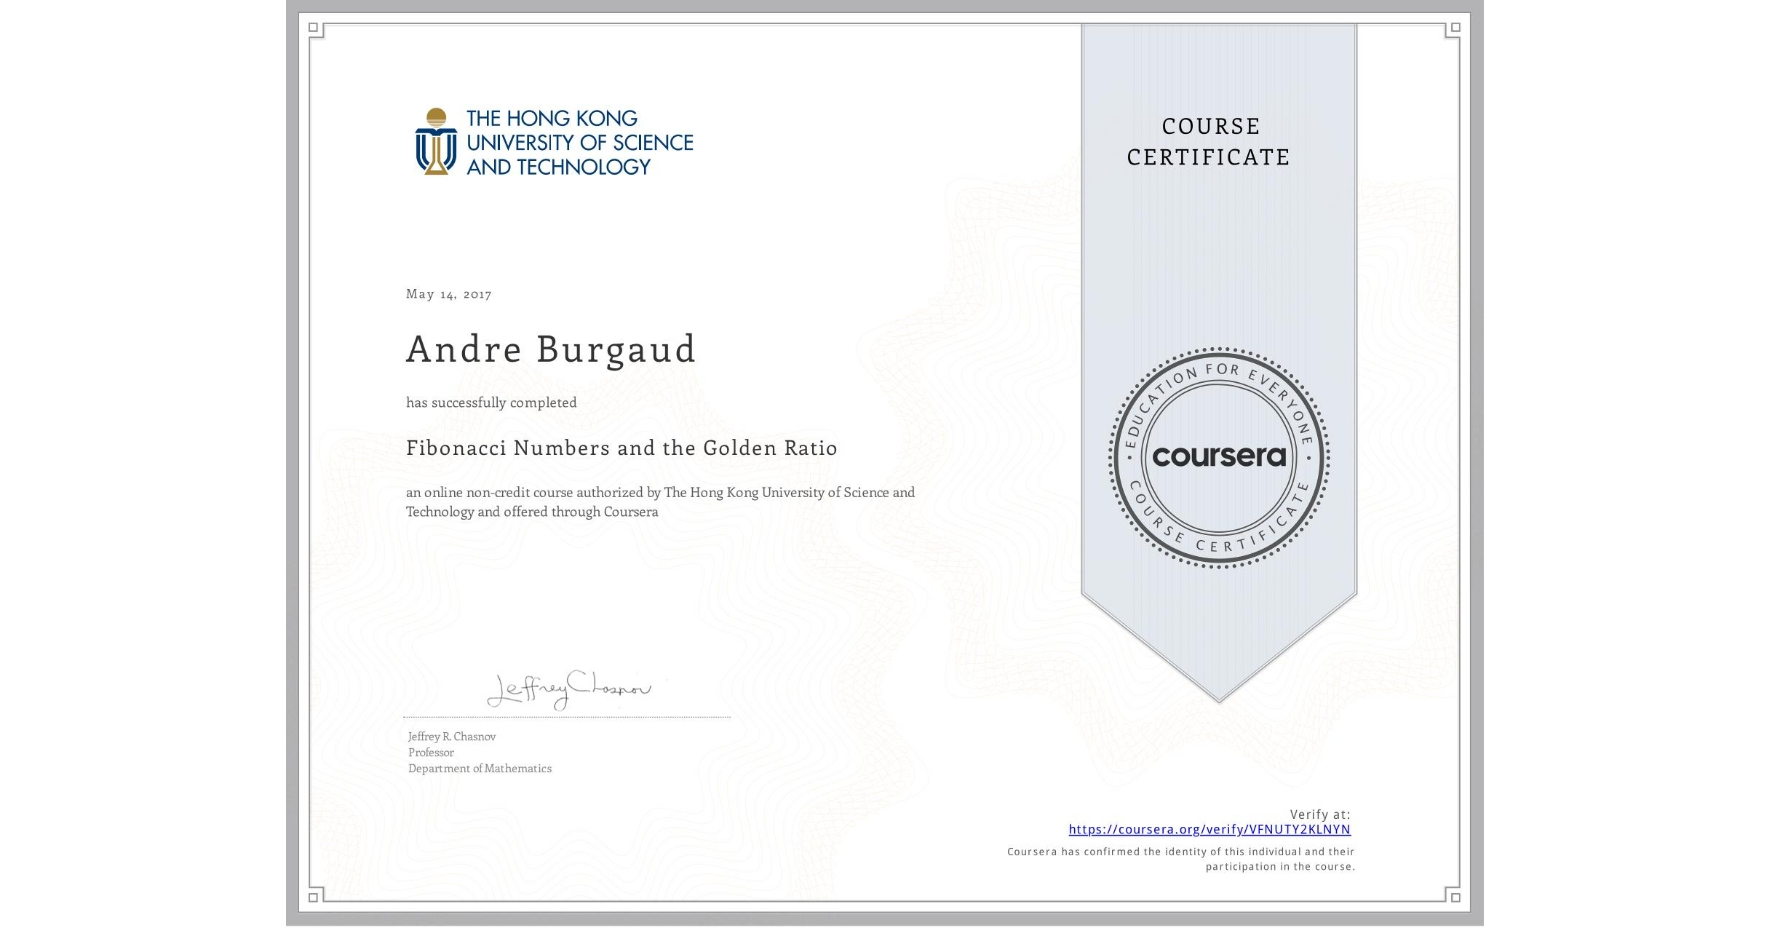 View certificate for Andre Burgaud, Fibonacci Numbers and the Golden Ratio, an online non-credit course authorized by The Hong Kong University of Science and Technology and offered through Coursera